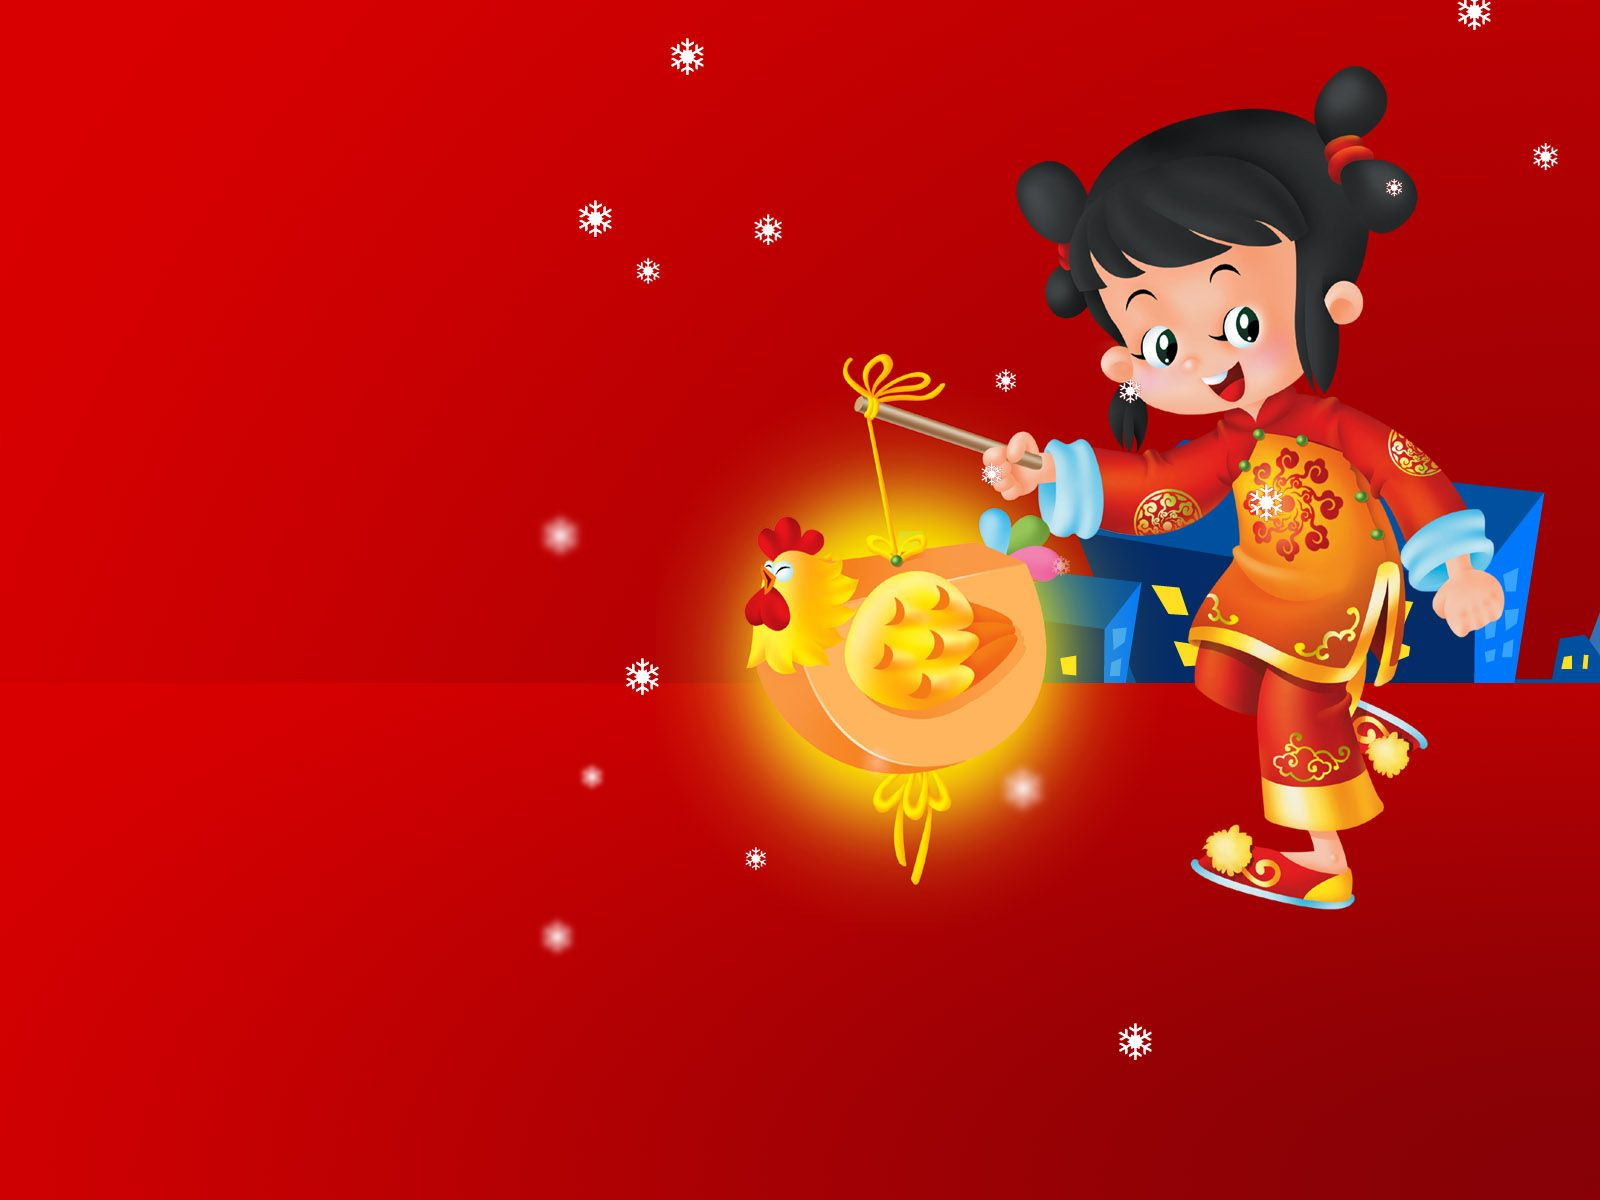 chinese new year 2014 desktop wallpaper